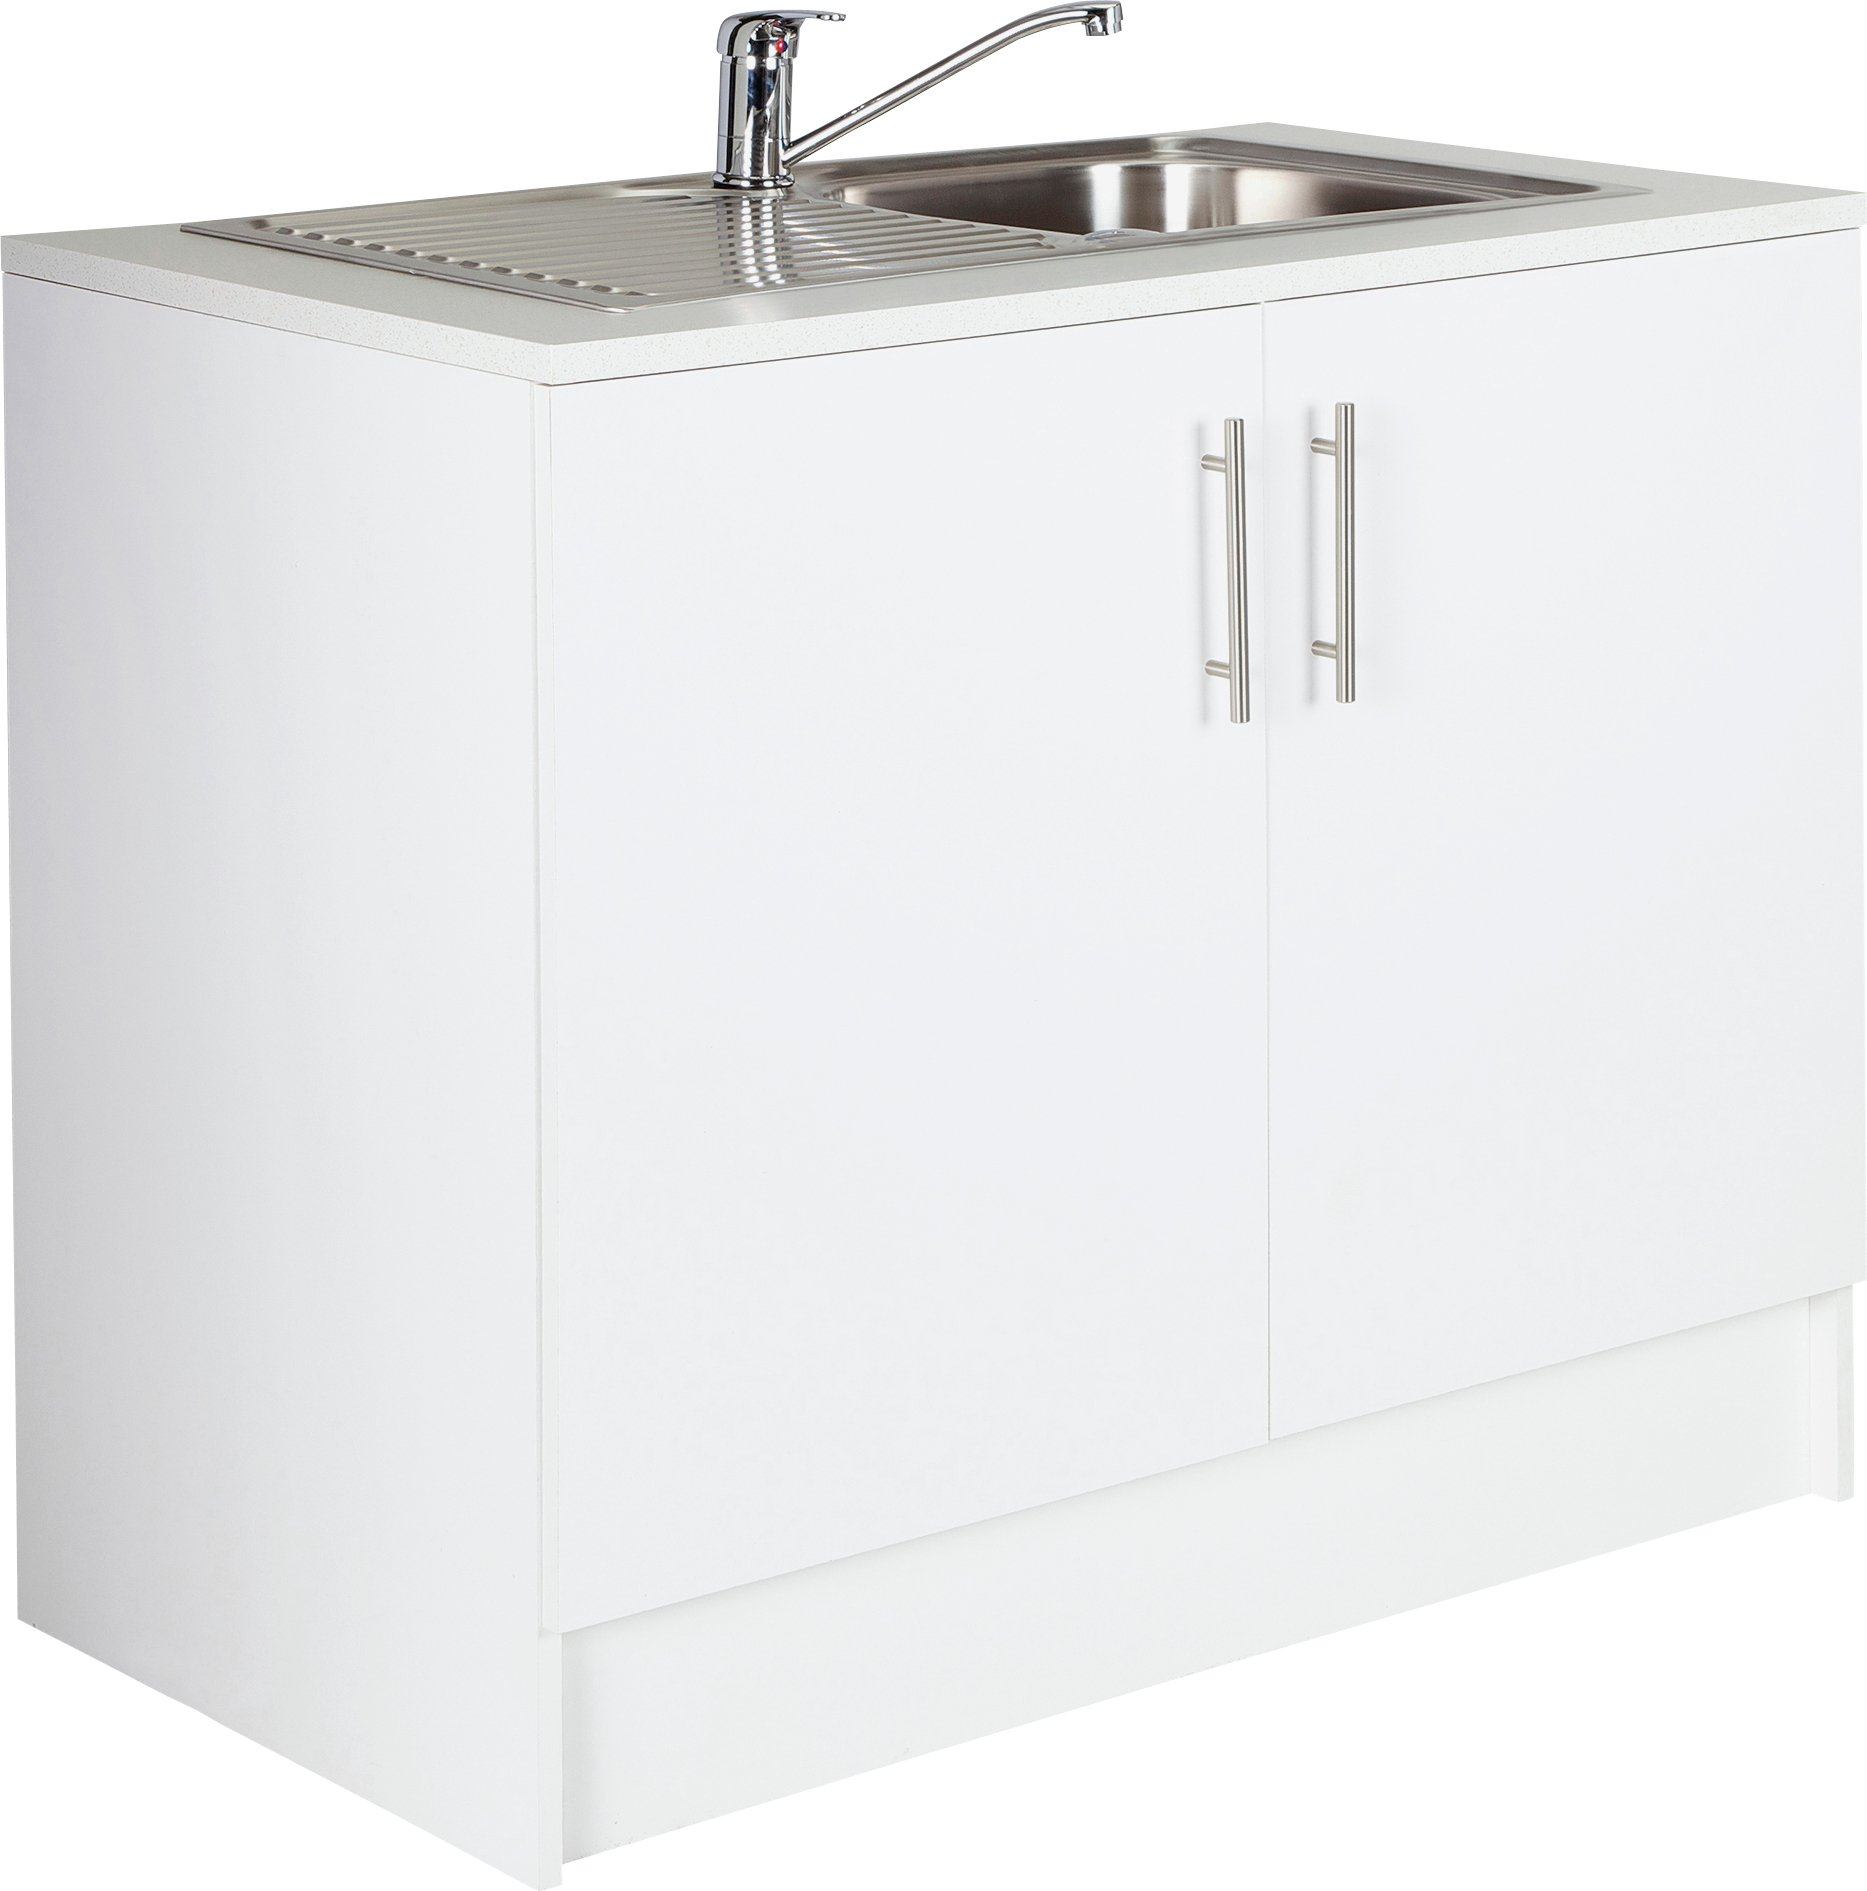 stainless steel kitchen sink unit athina 1000mm stainless steel kitchen sink unit review 8272